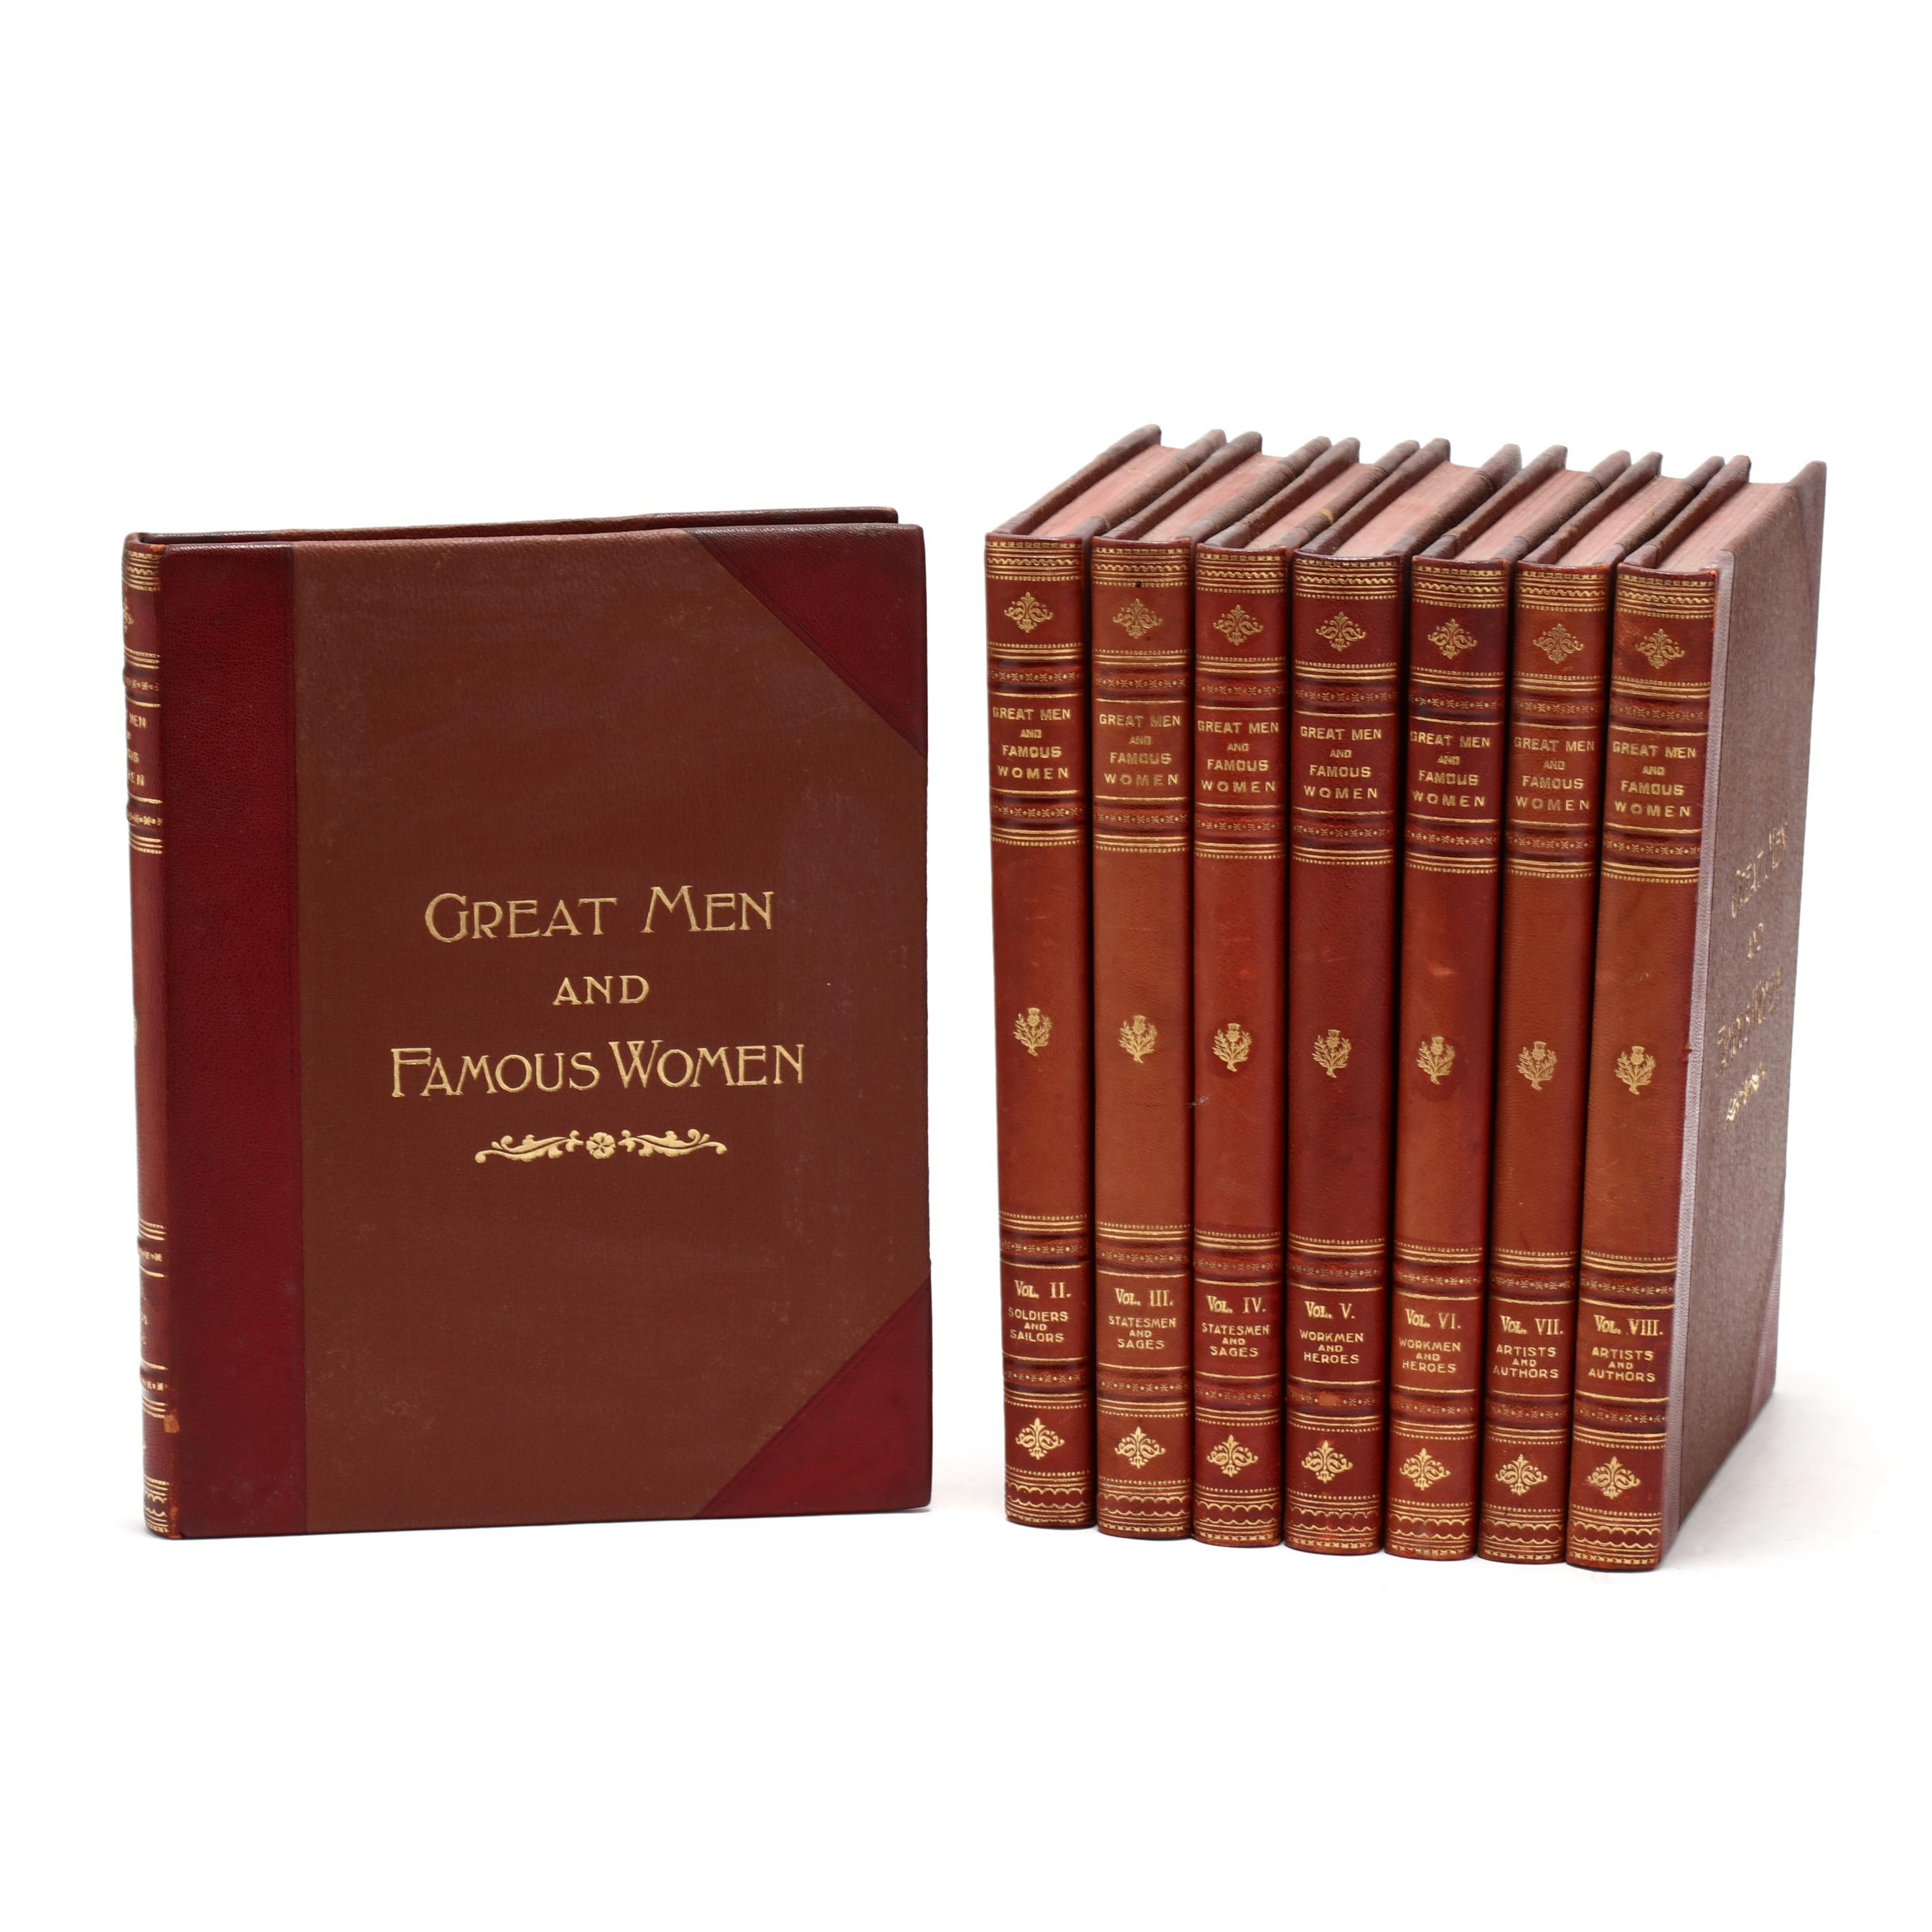 eight-volumes-of-i-great-men-and-famous-women-i